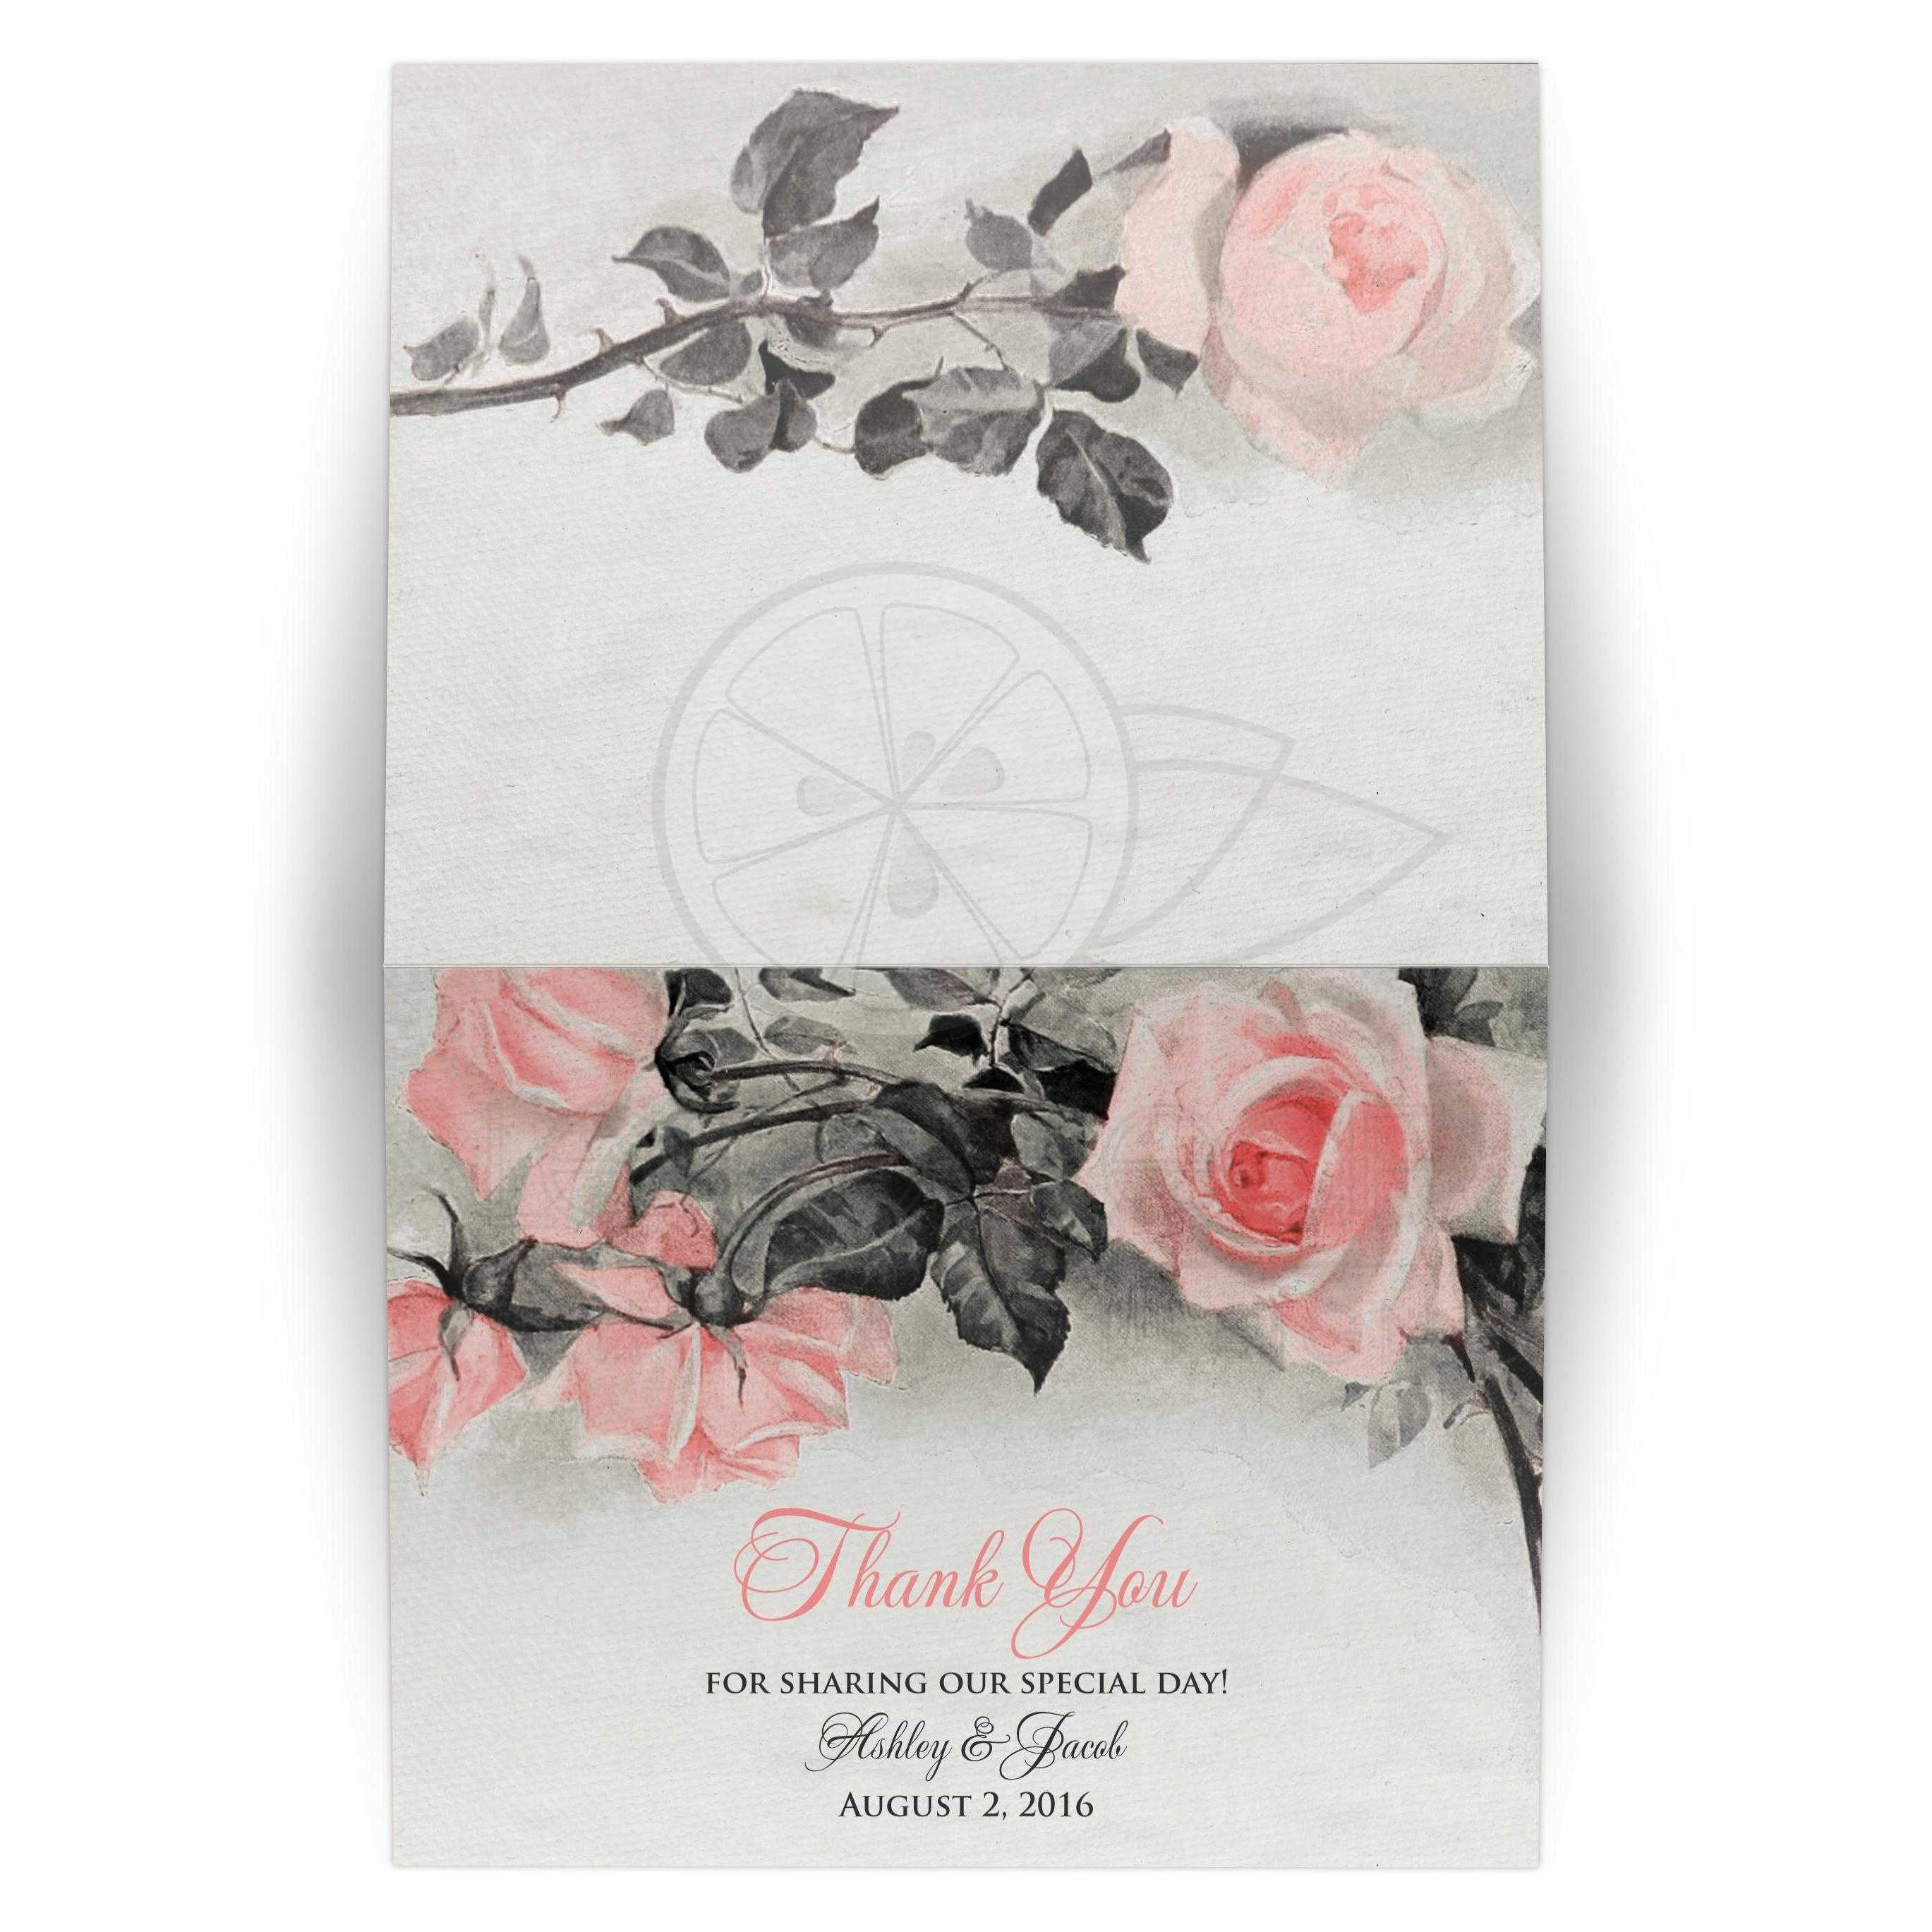 Vintage Blush Pink And Gray Rose Wedding Thank You Card